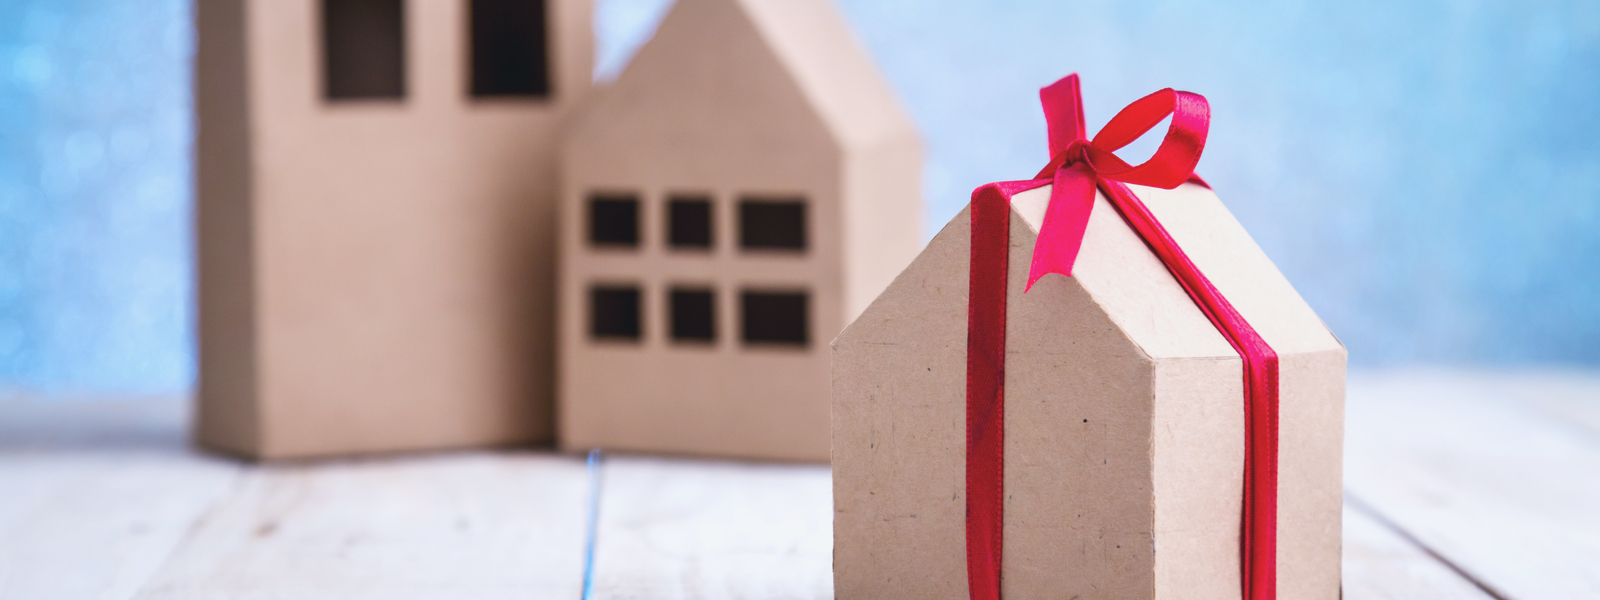 Personalized closing gifts for clients through Transactions-bg